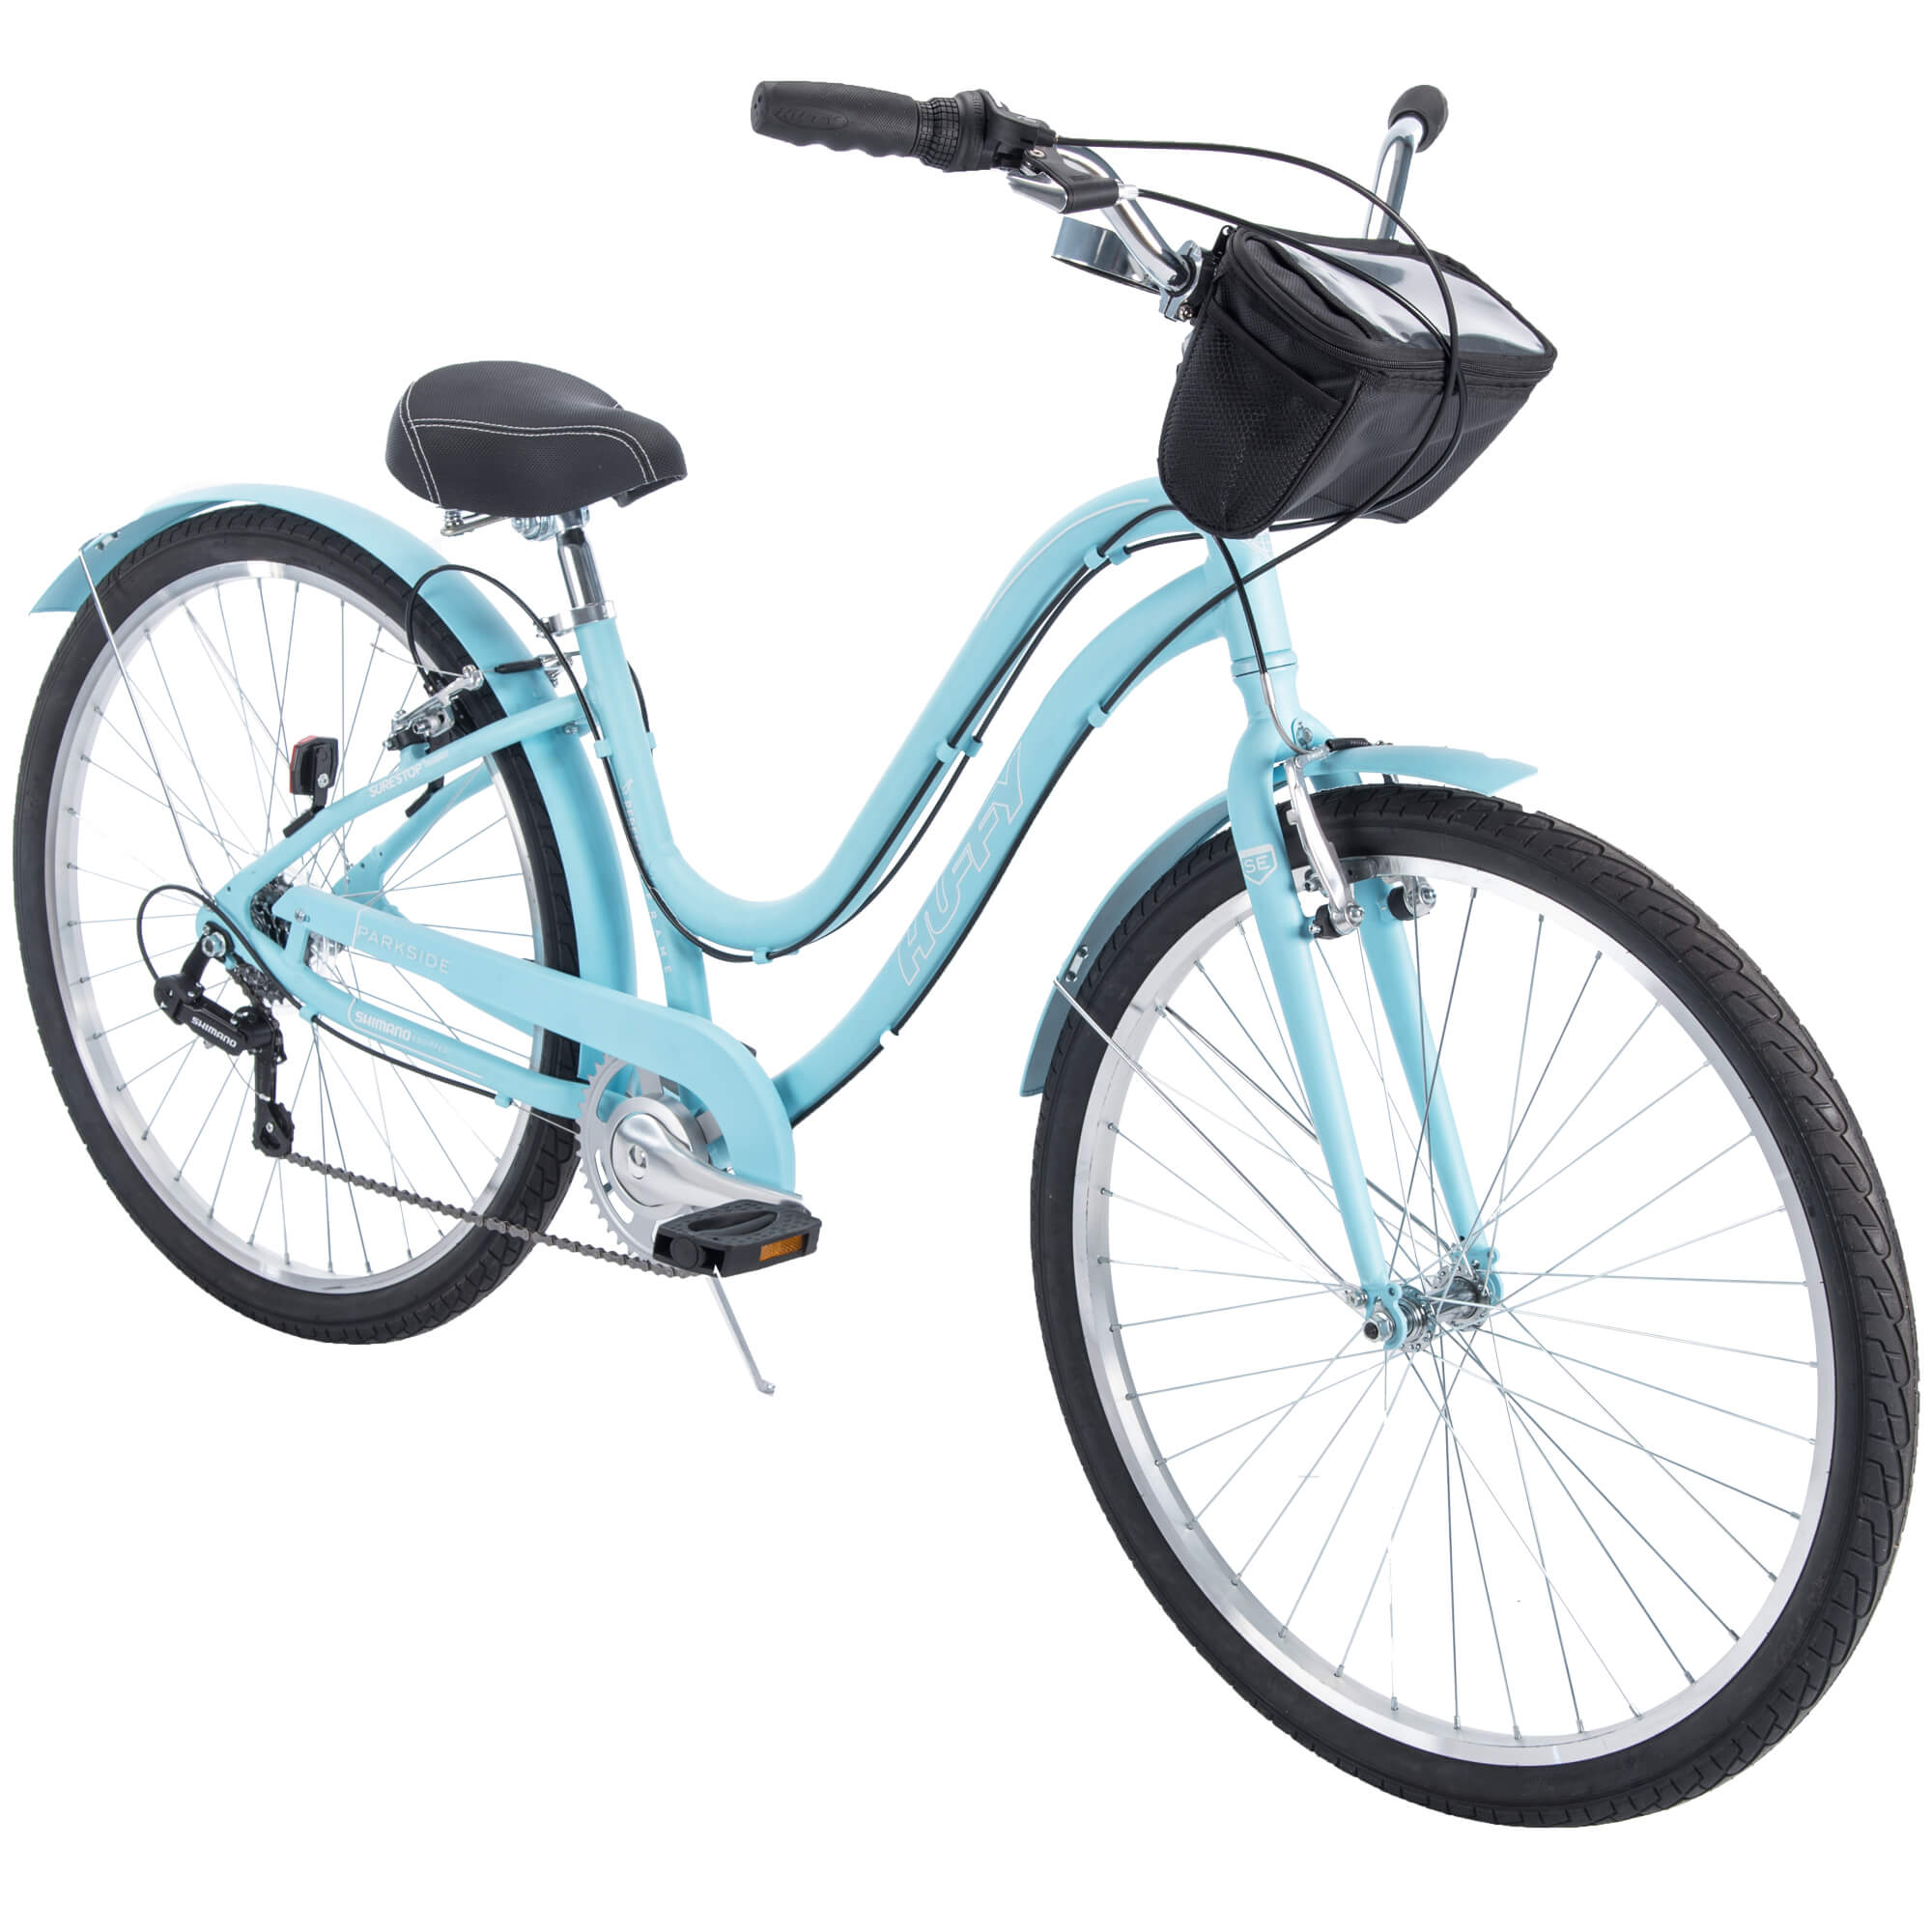 "Huffy 27.5"" Parkside Women's 7-Speed Comfort Bike with Aluminum Frame"